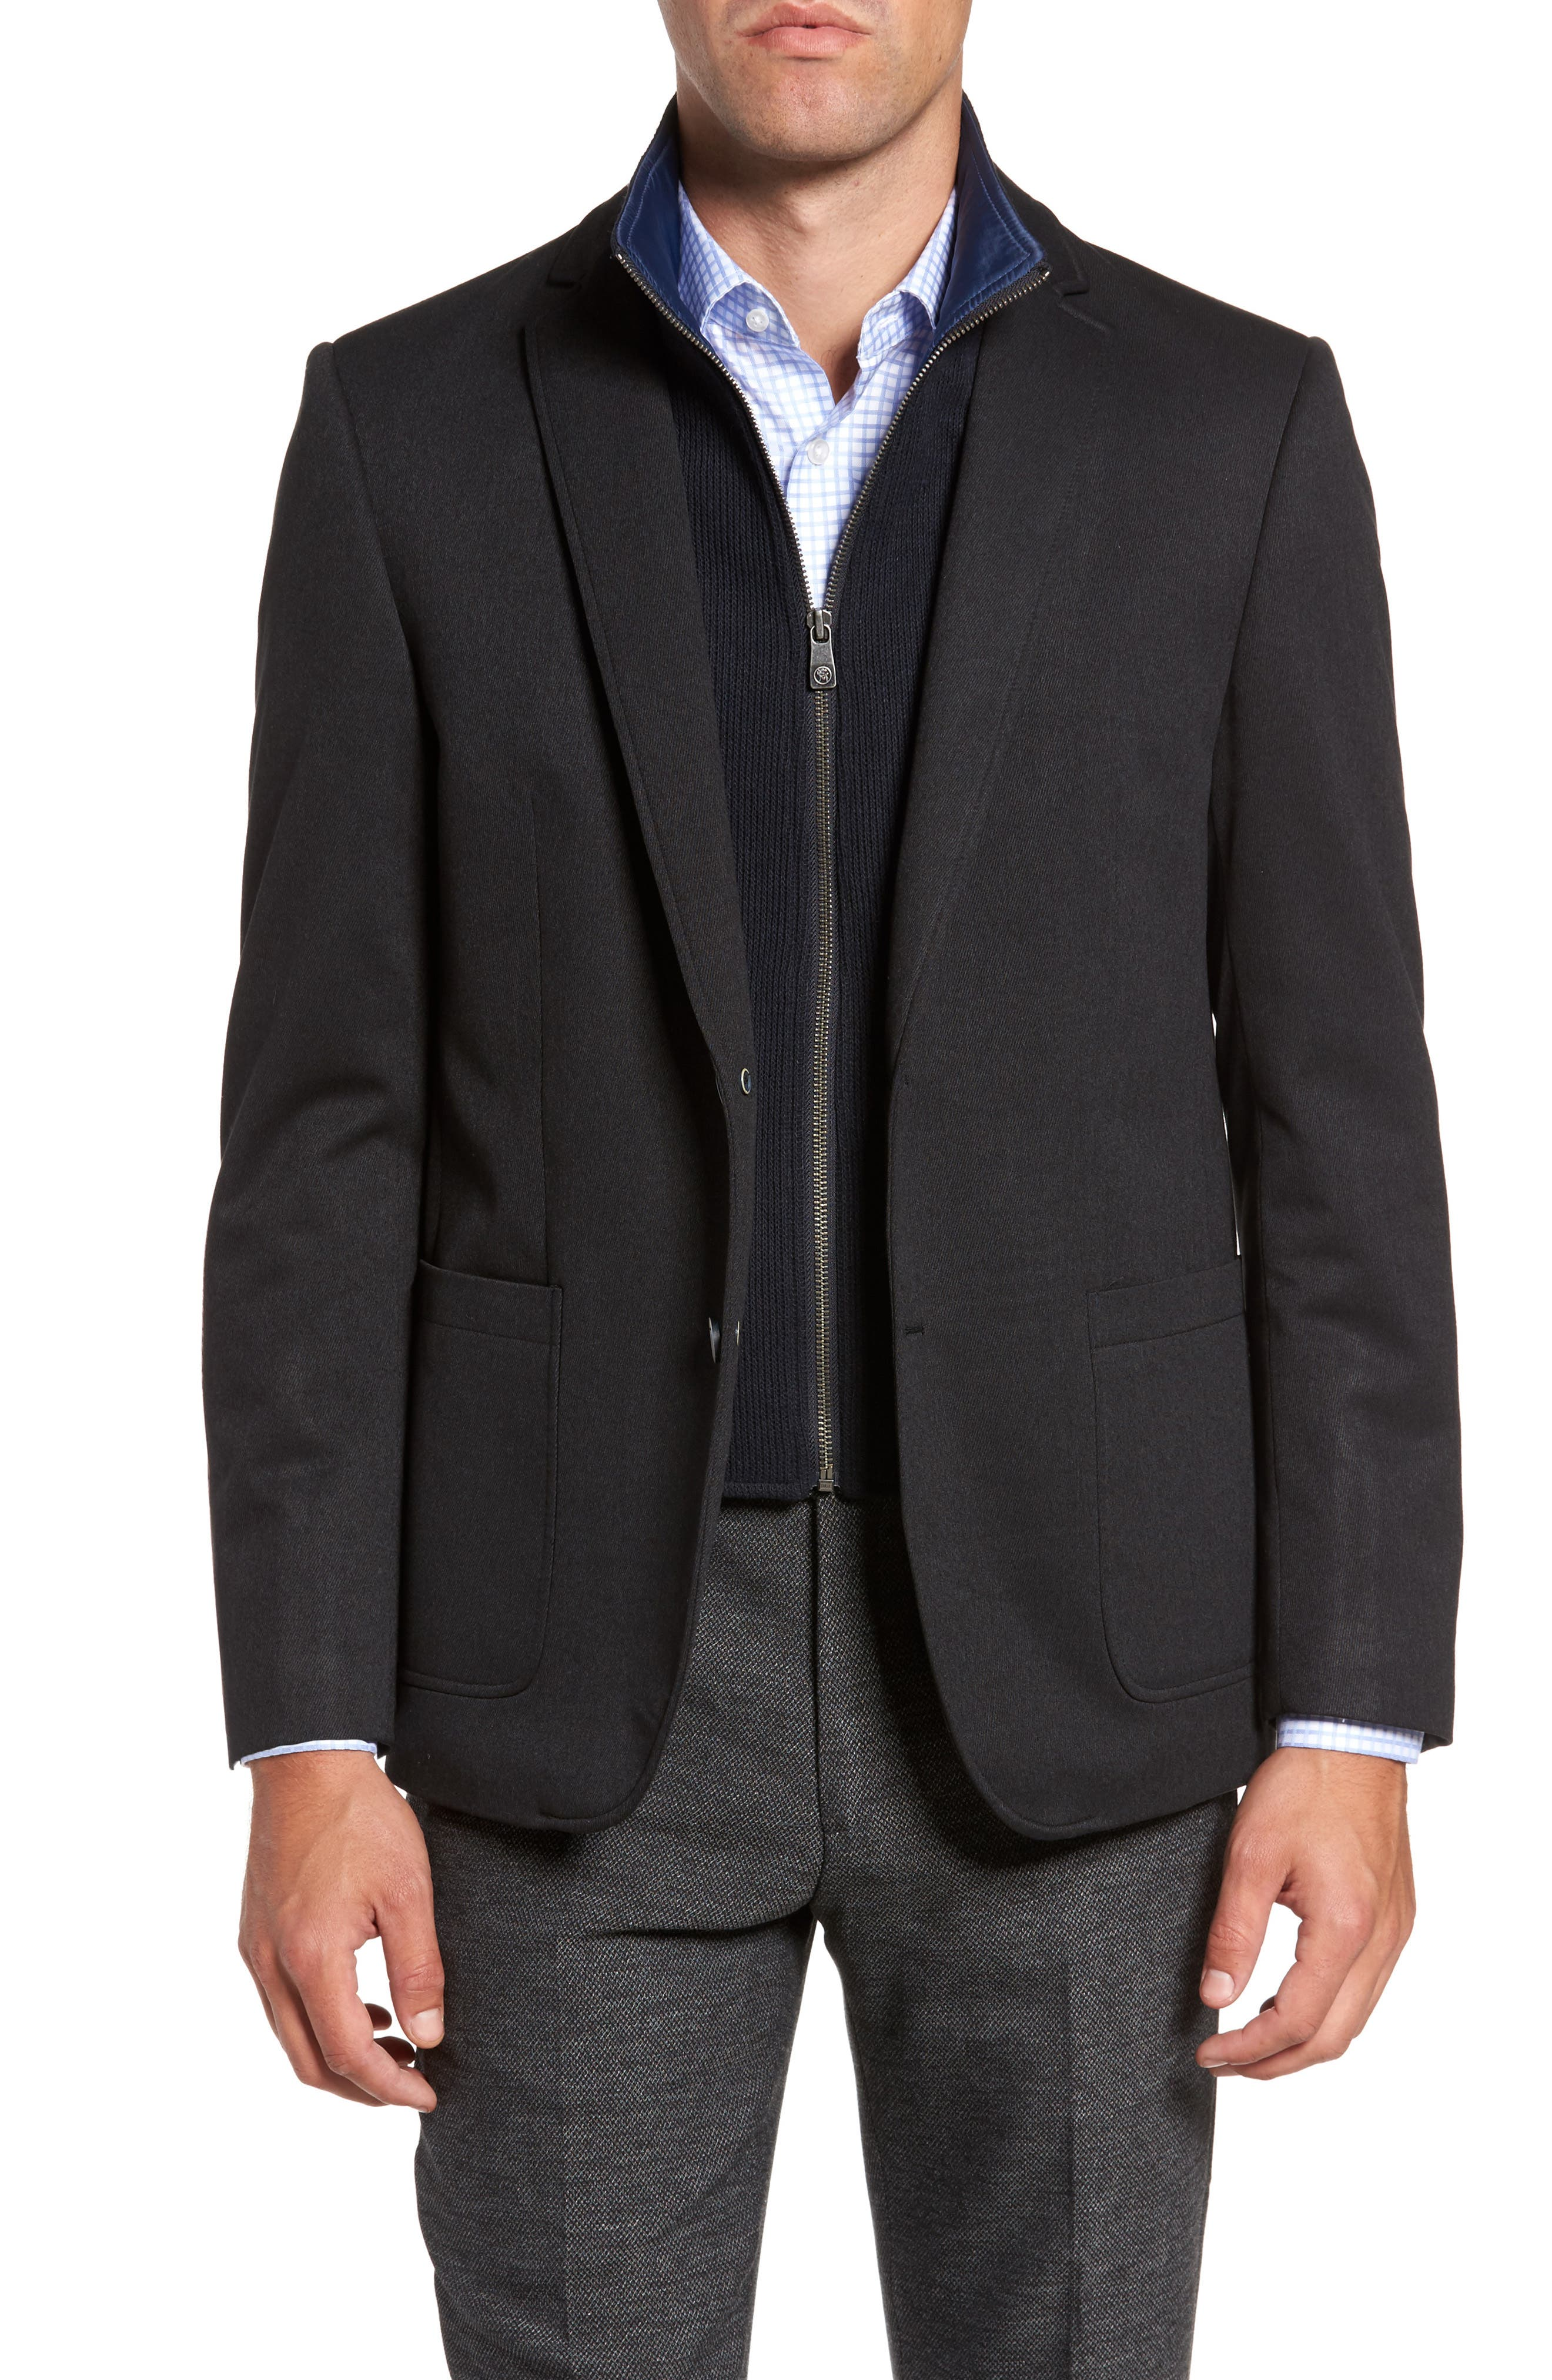 Broderick Technical Outerwear Jacket with Detachable Knit Bib,                             Main thumbnail 1, color,                             Navy